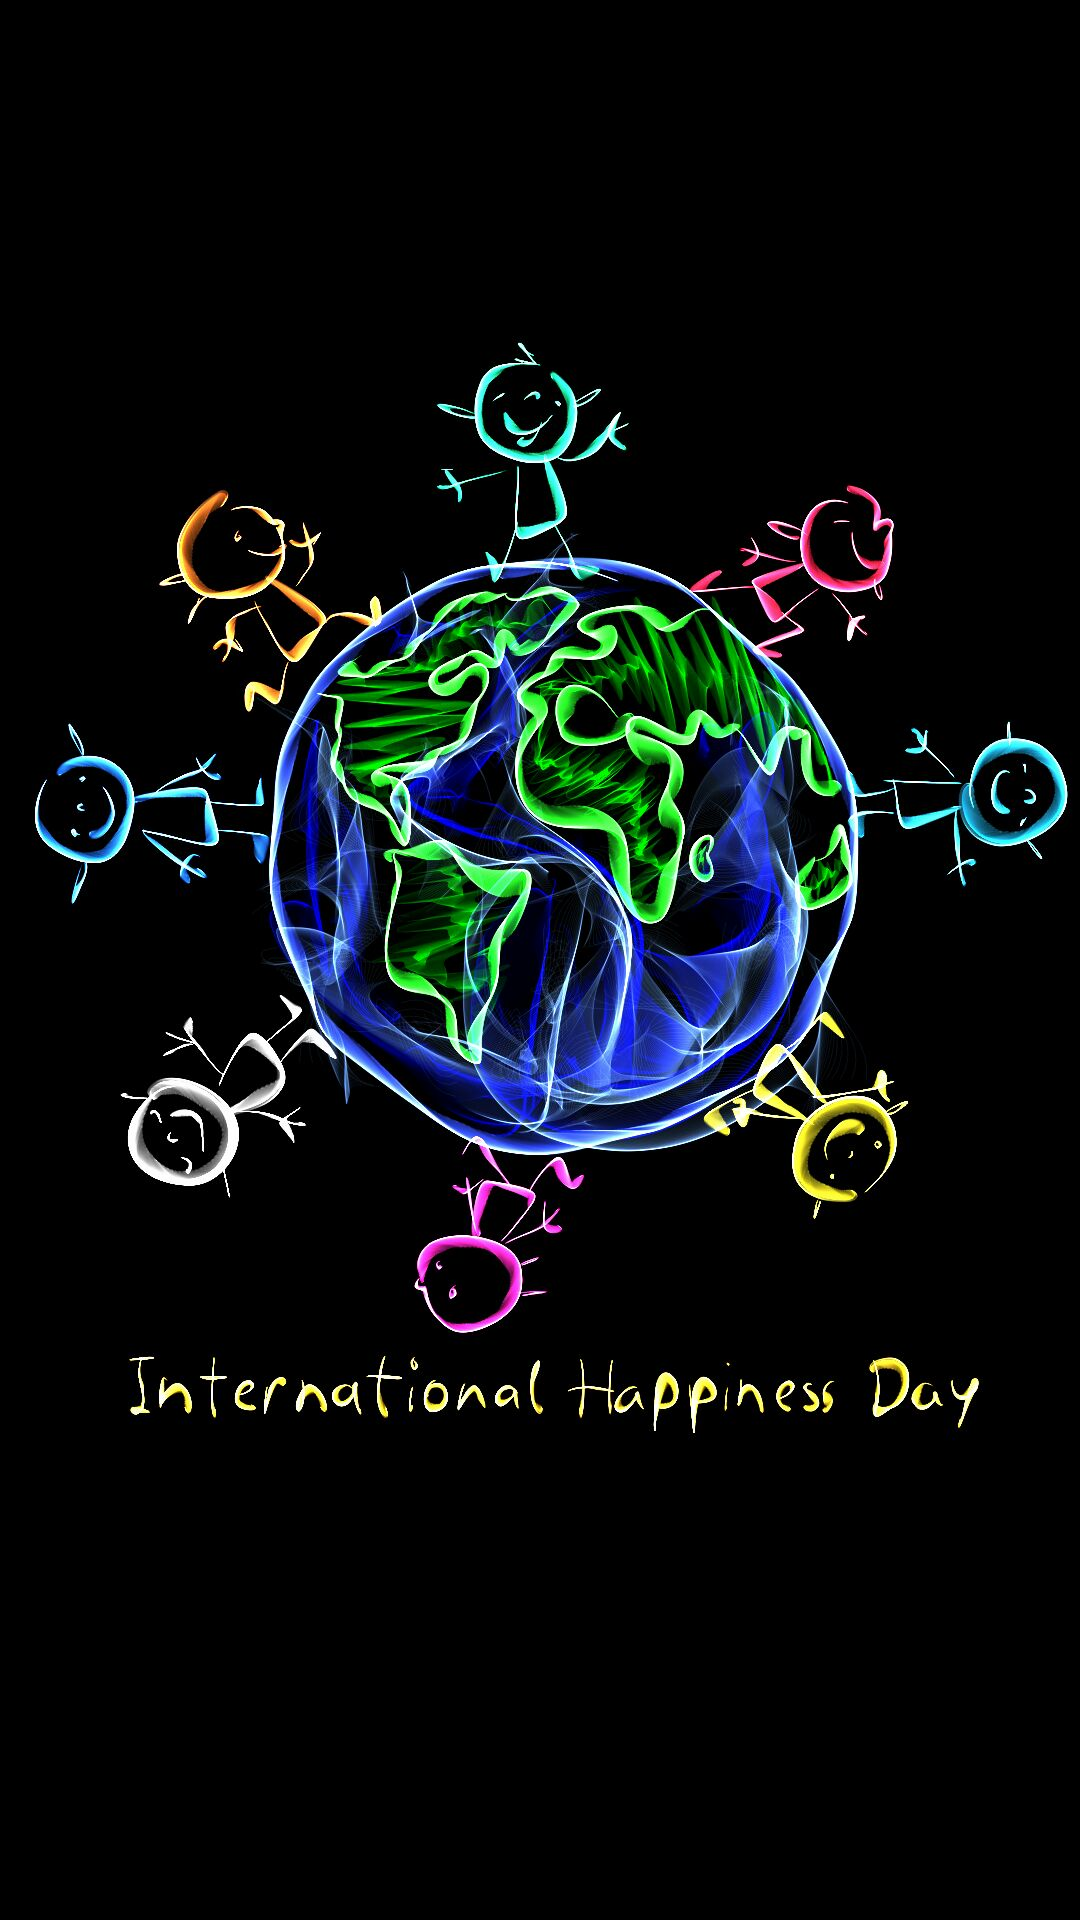 International hapiness day